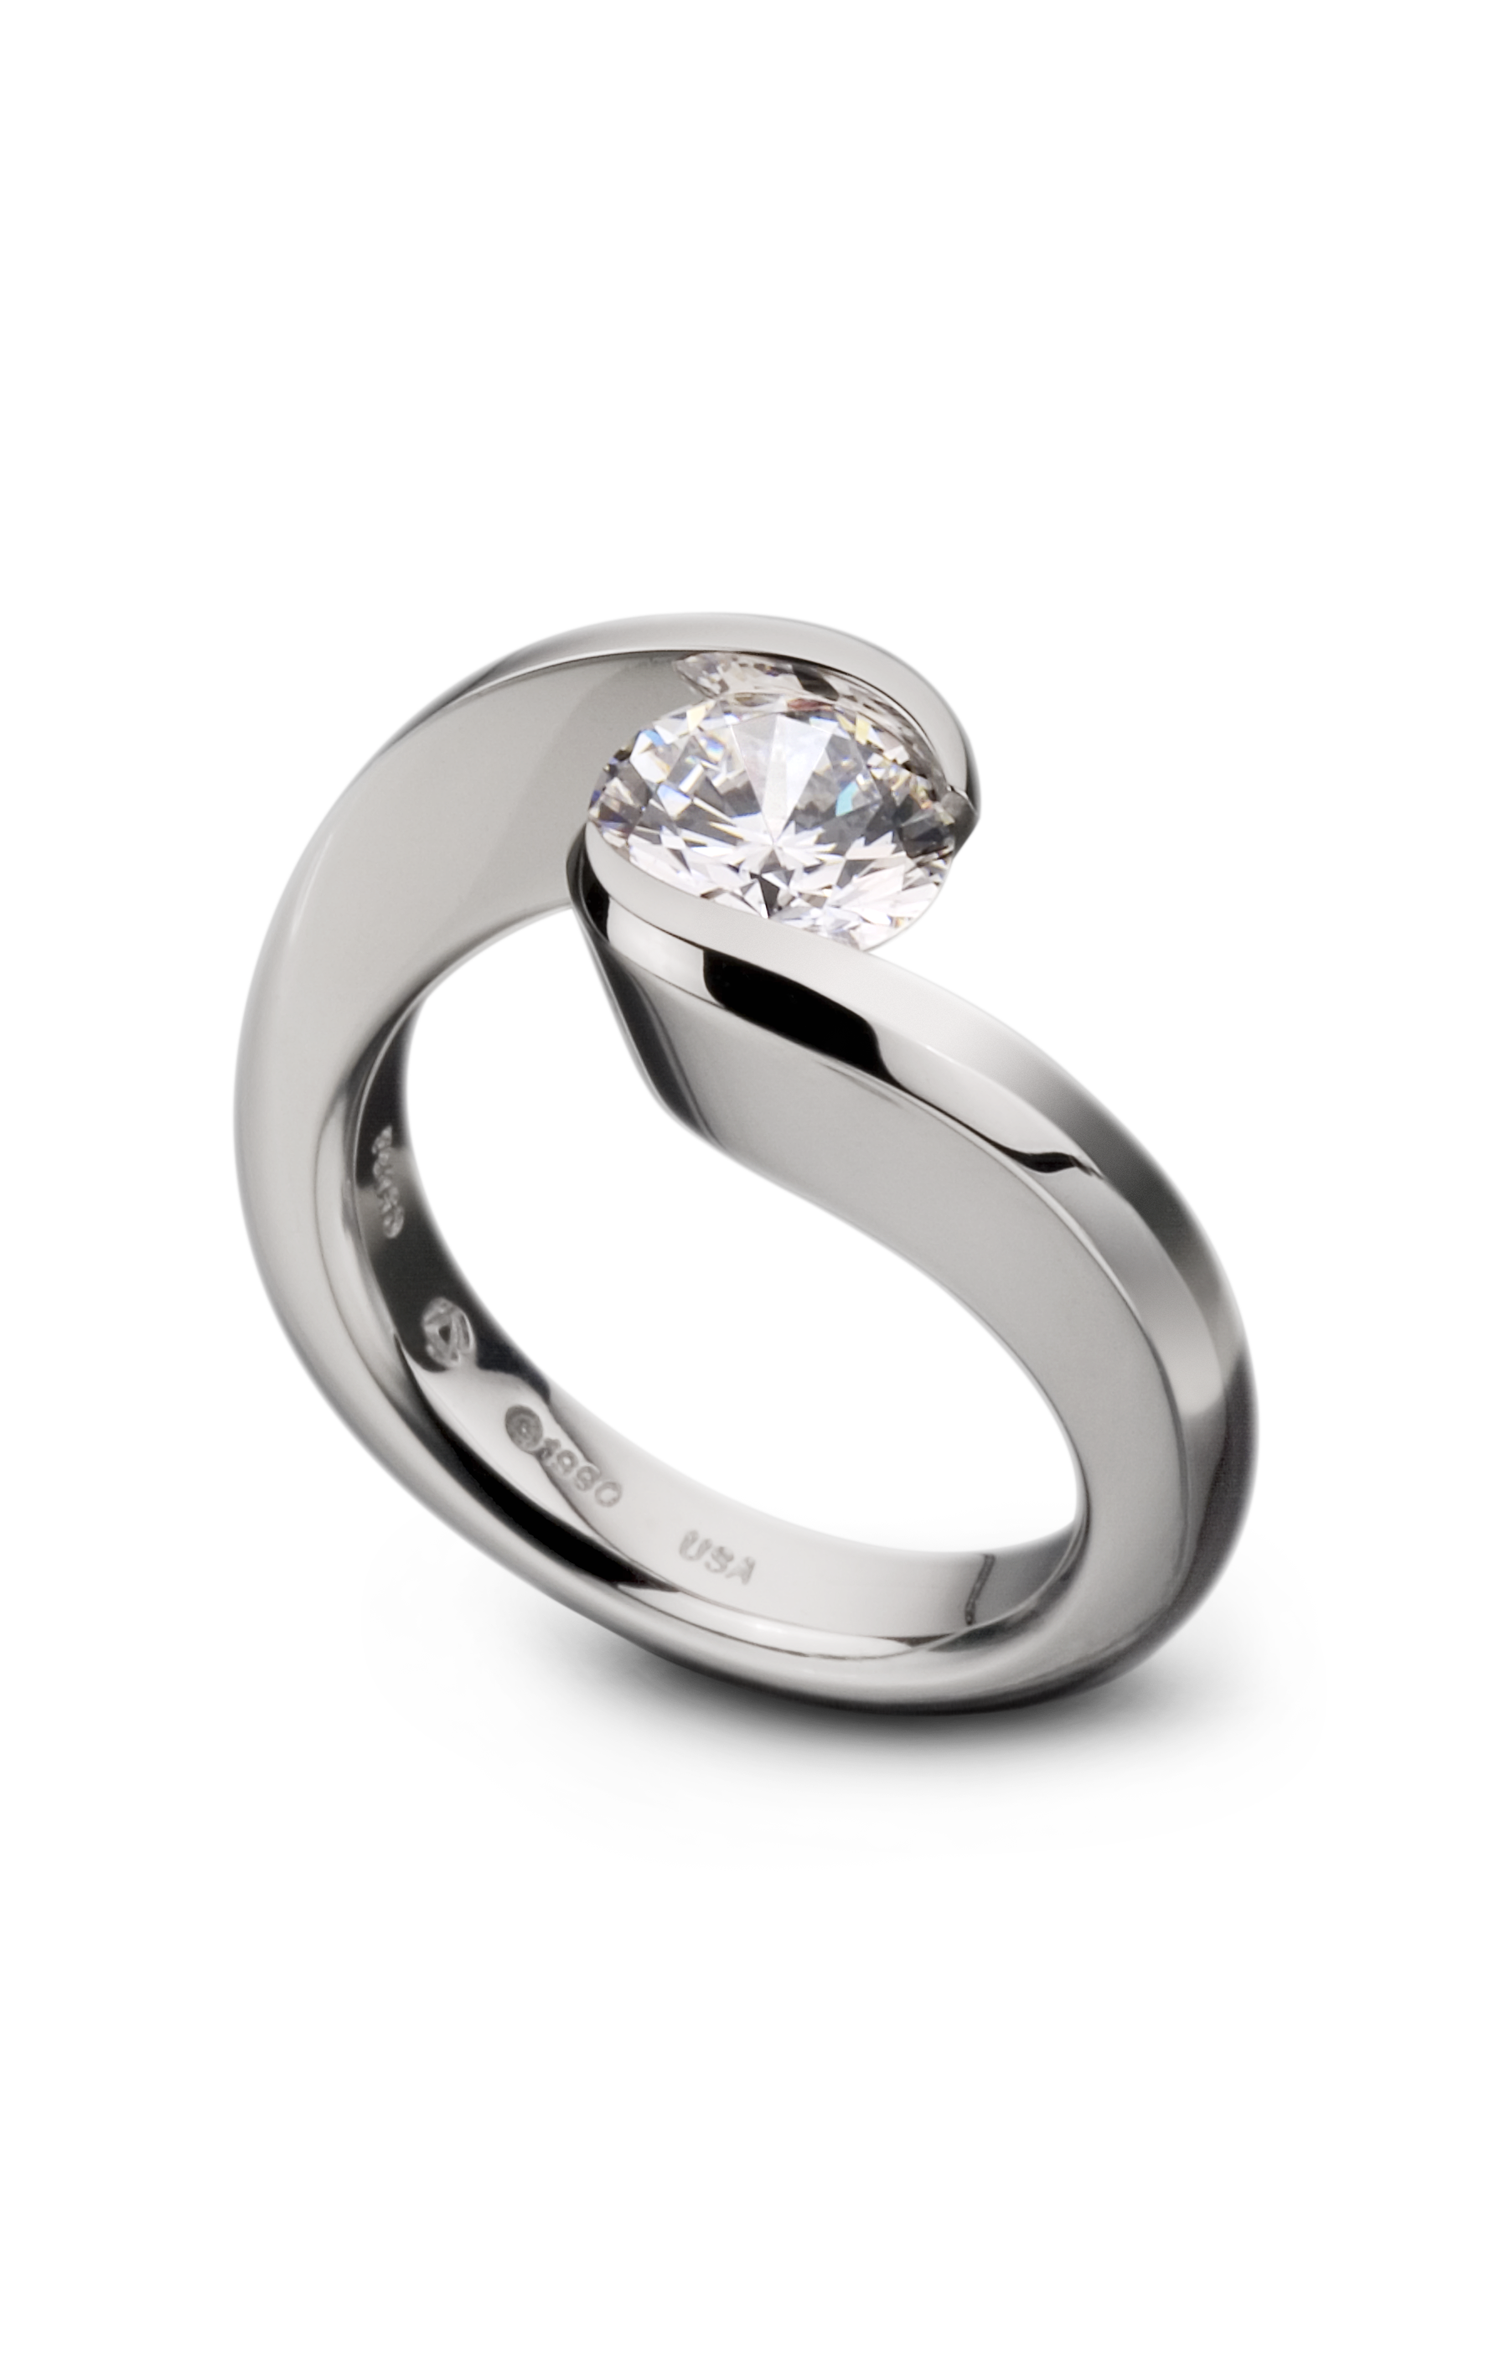 platinum product rings gold white ring design in sapphire with swirl or